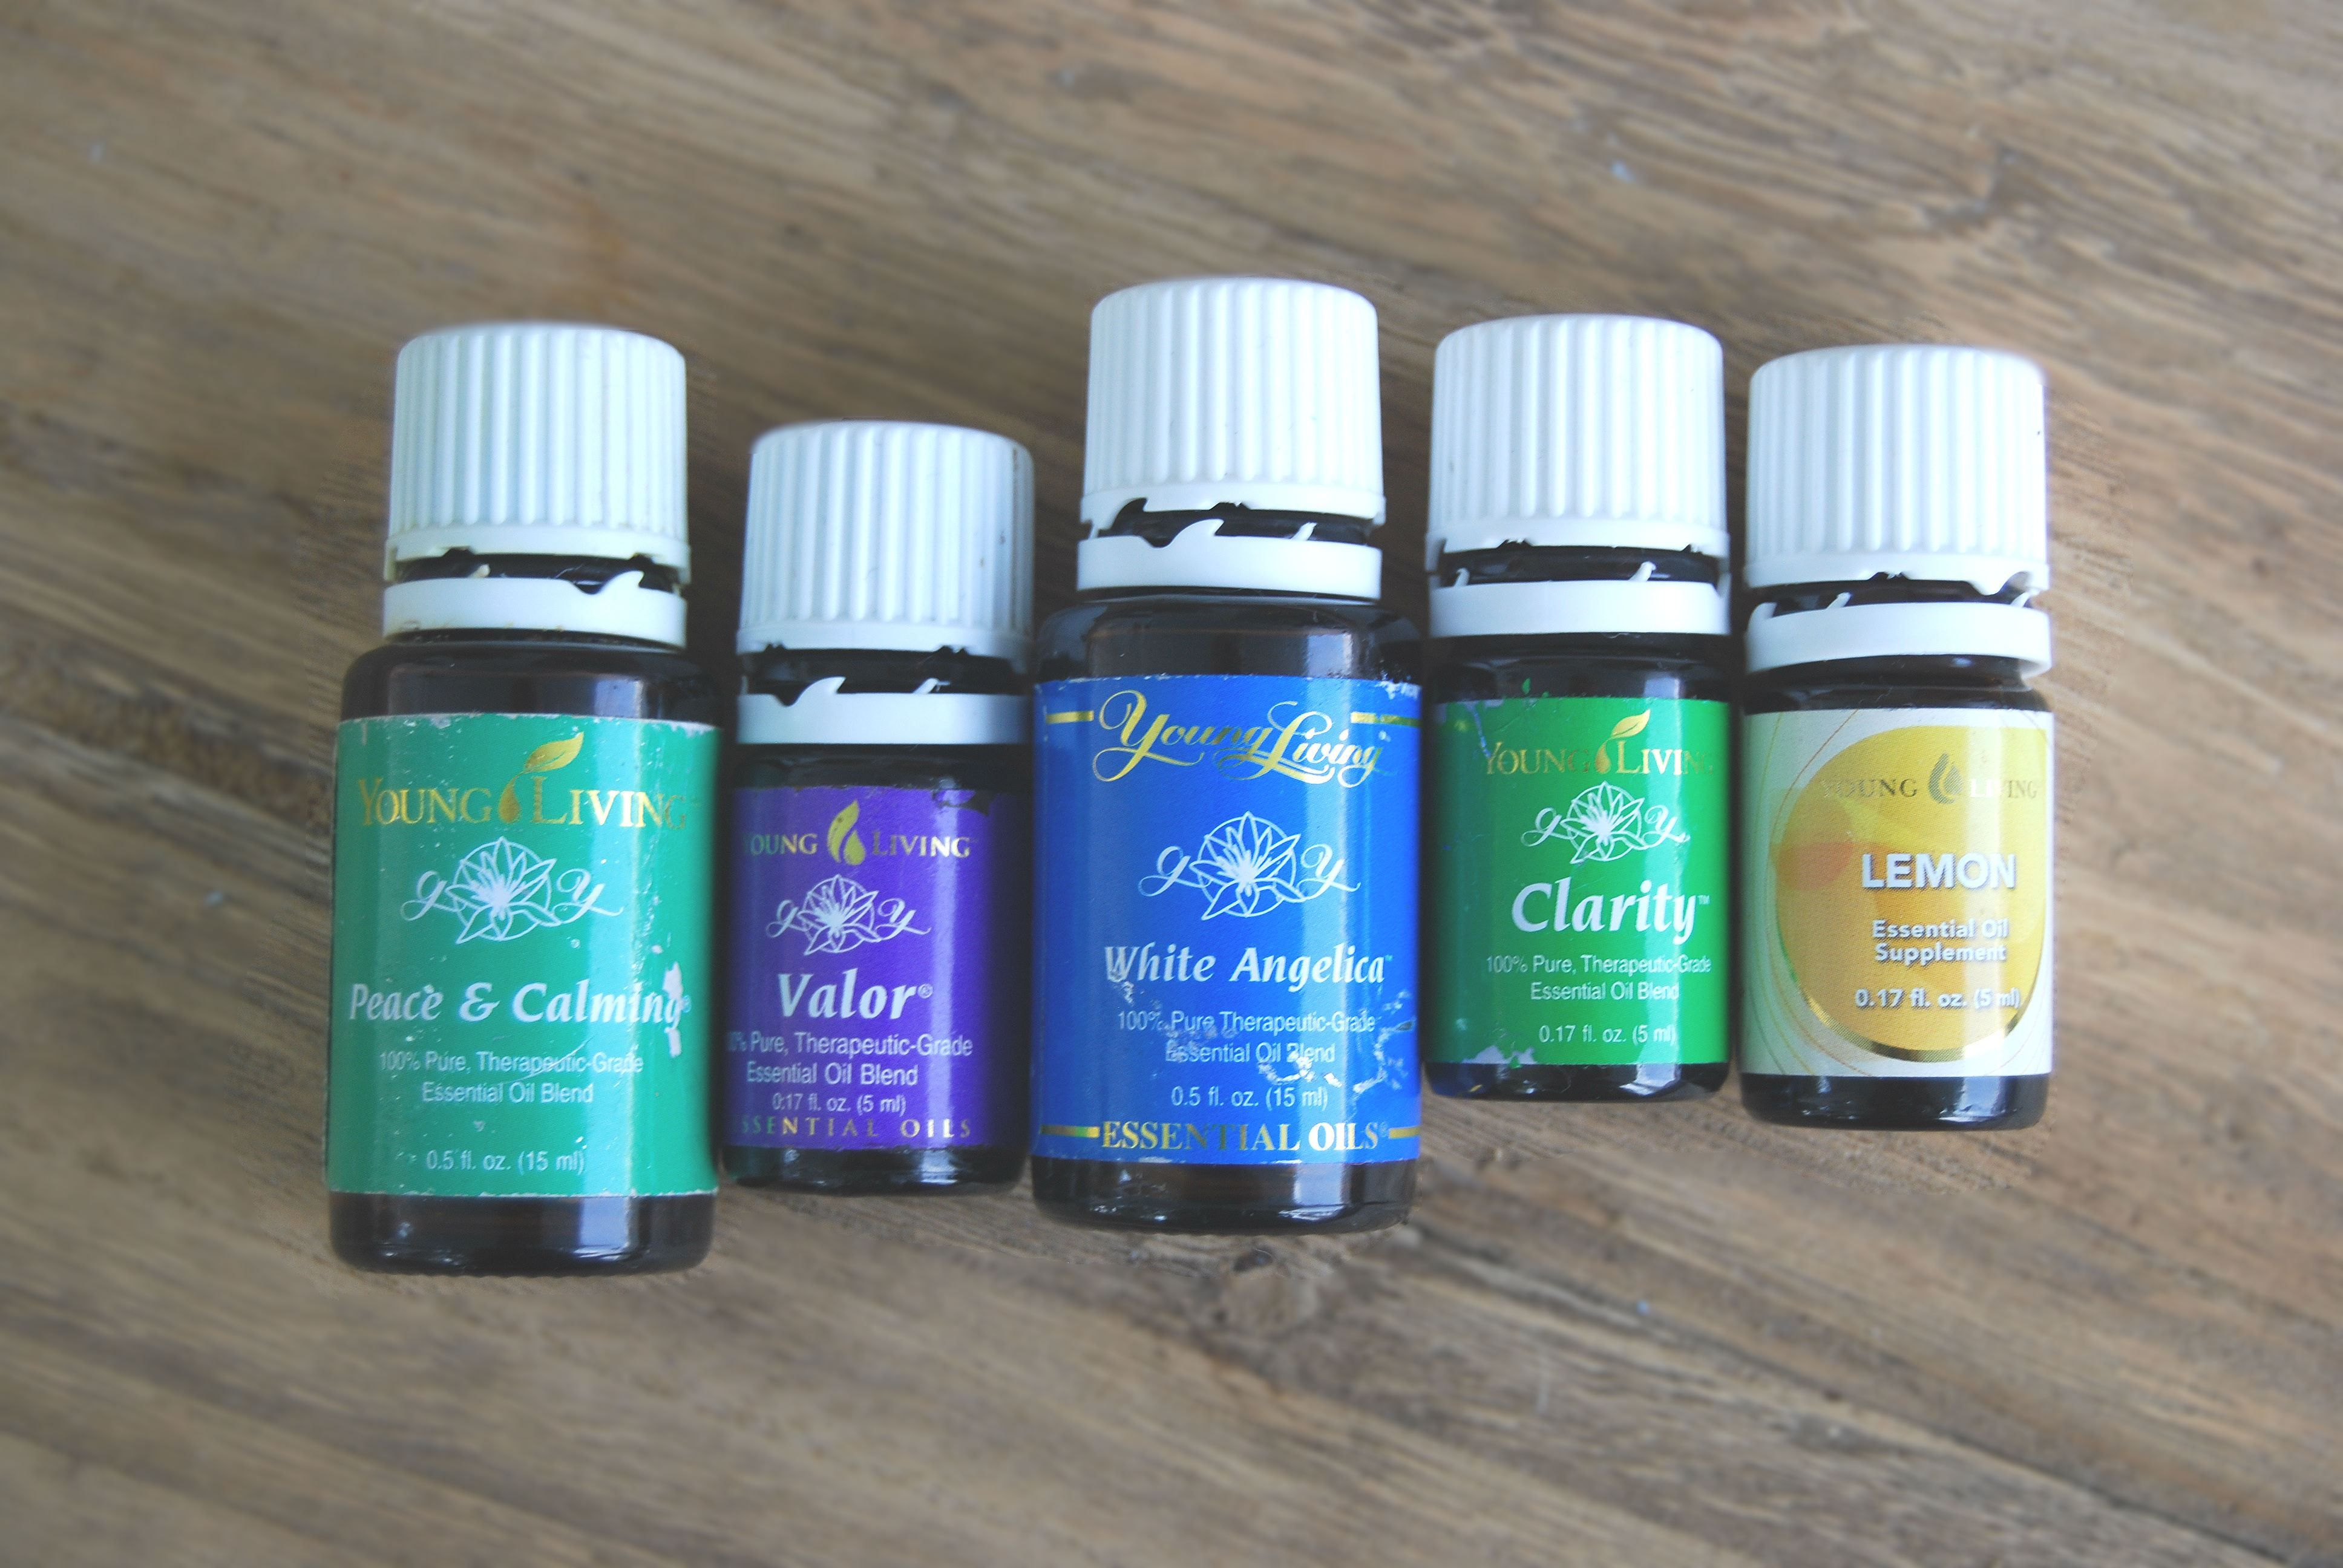 travel & stay healthy with young living essential oils